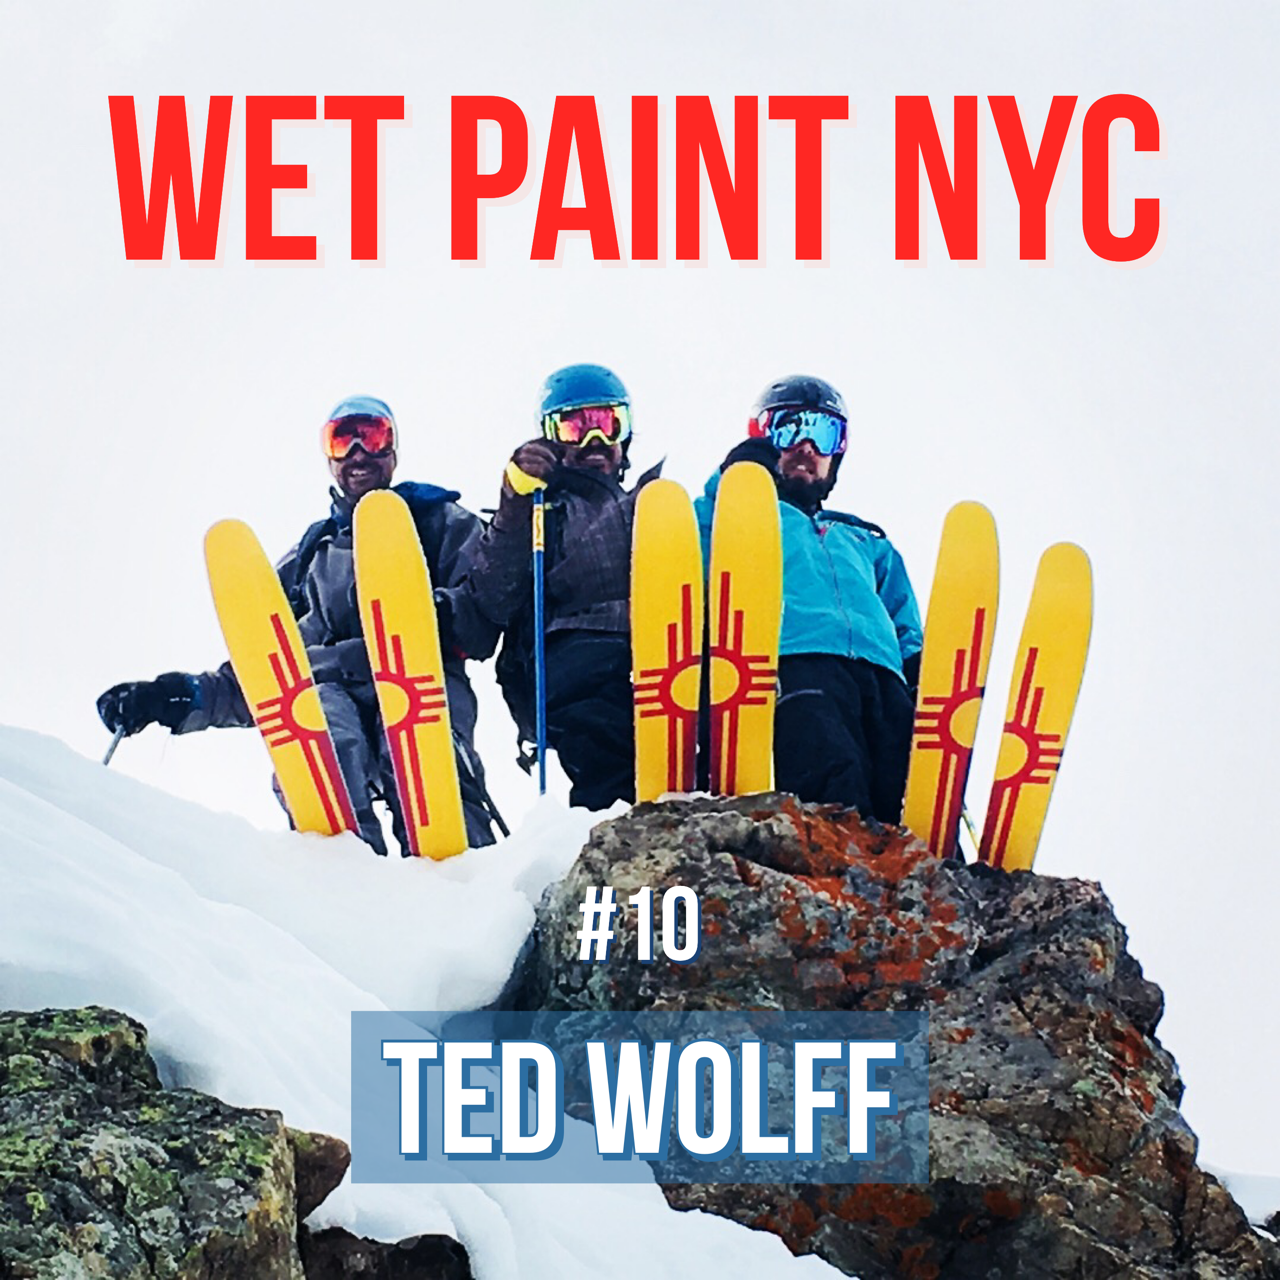 Ted Wolff tells us about life as an extreme skier, Breaking Bad conspiracies and his Made in America ski company Just Point It, based in New Mexico. Special guests include a very happy baby.